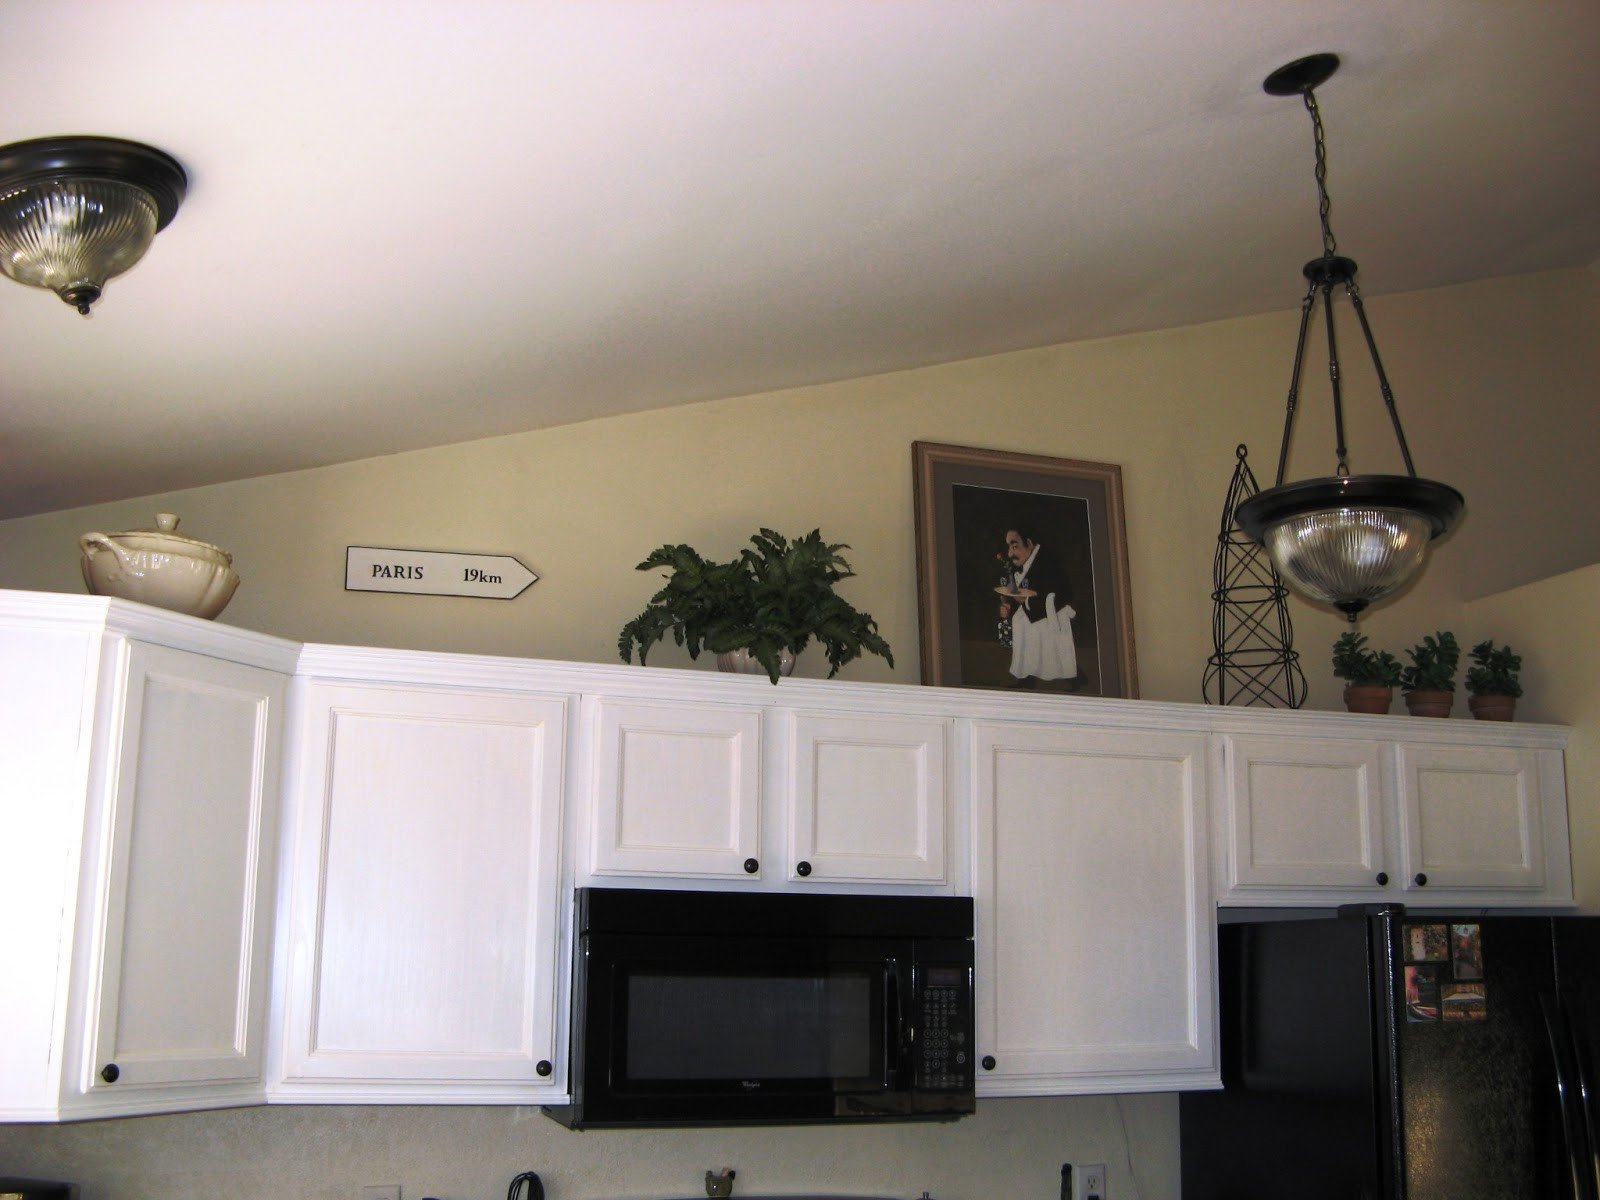 Top Of Kitchen Cabinet Decor New French Hollow Farm Decorating Over the Cabinets Not Over the top